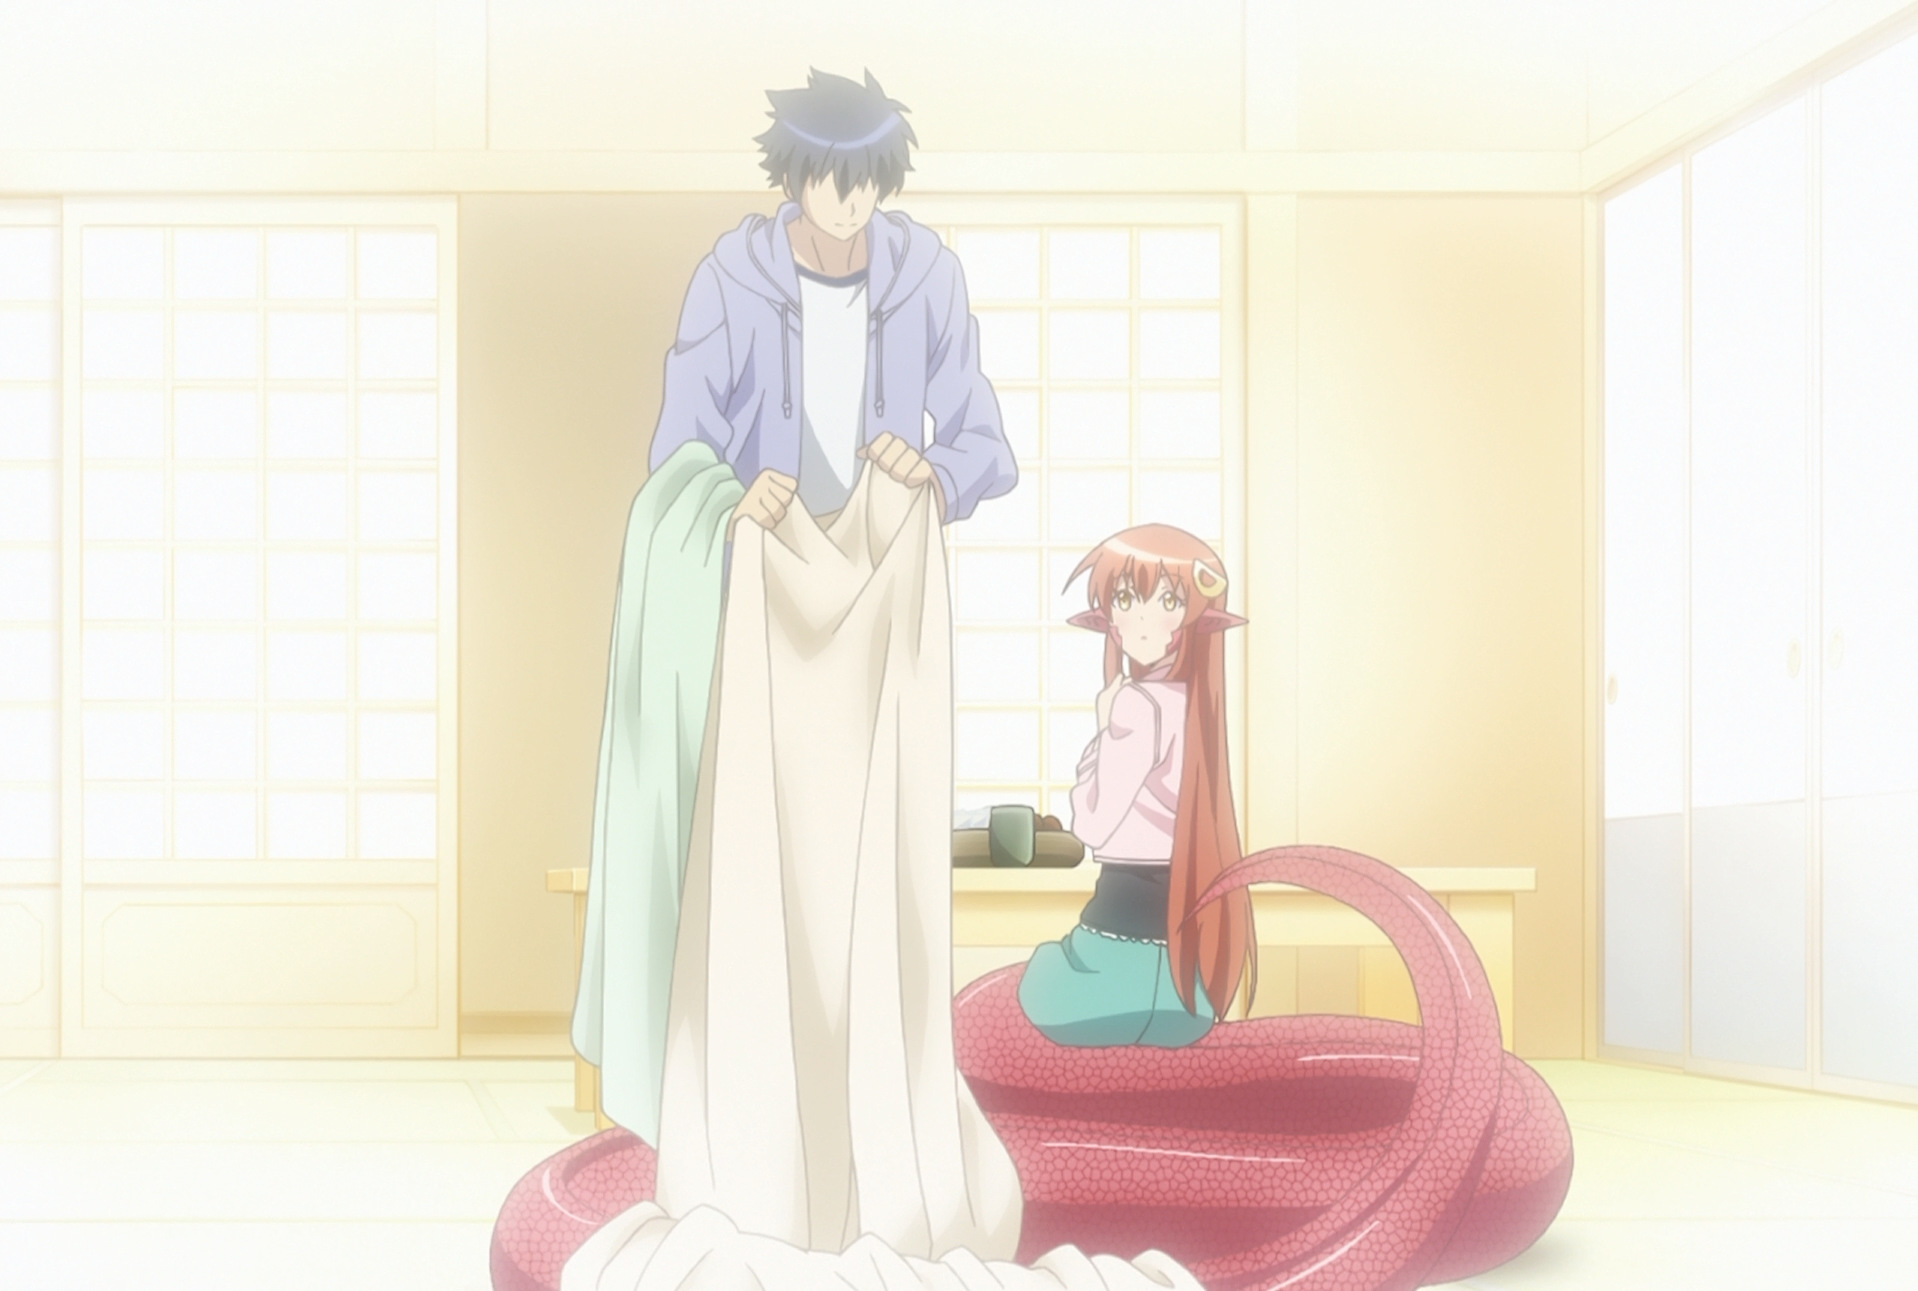 [SallySubs] Monster Musume no Iru Nichijou - 01 [BD 1080p FLAC] [FEB61F59].mkv_snapshot_10.41_[2015.12.22_15.19.07]_stitch